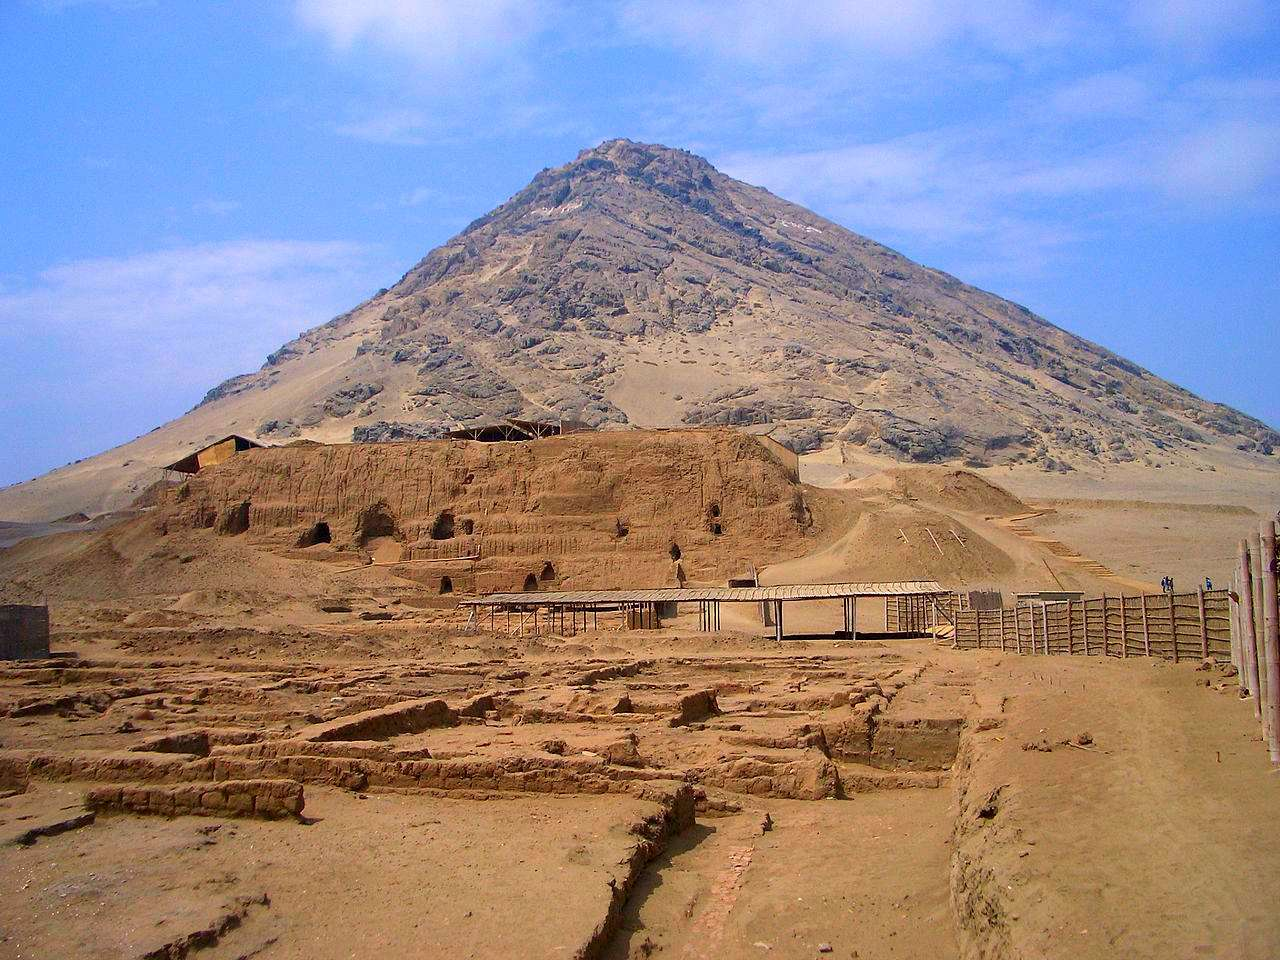 16 ancient cities and settlements that were mysteriously abandoned 20